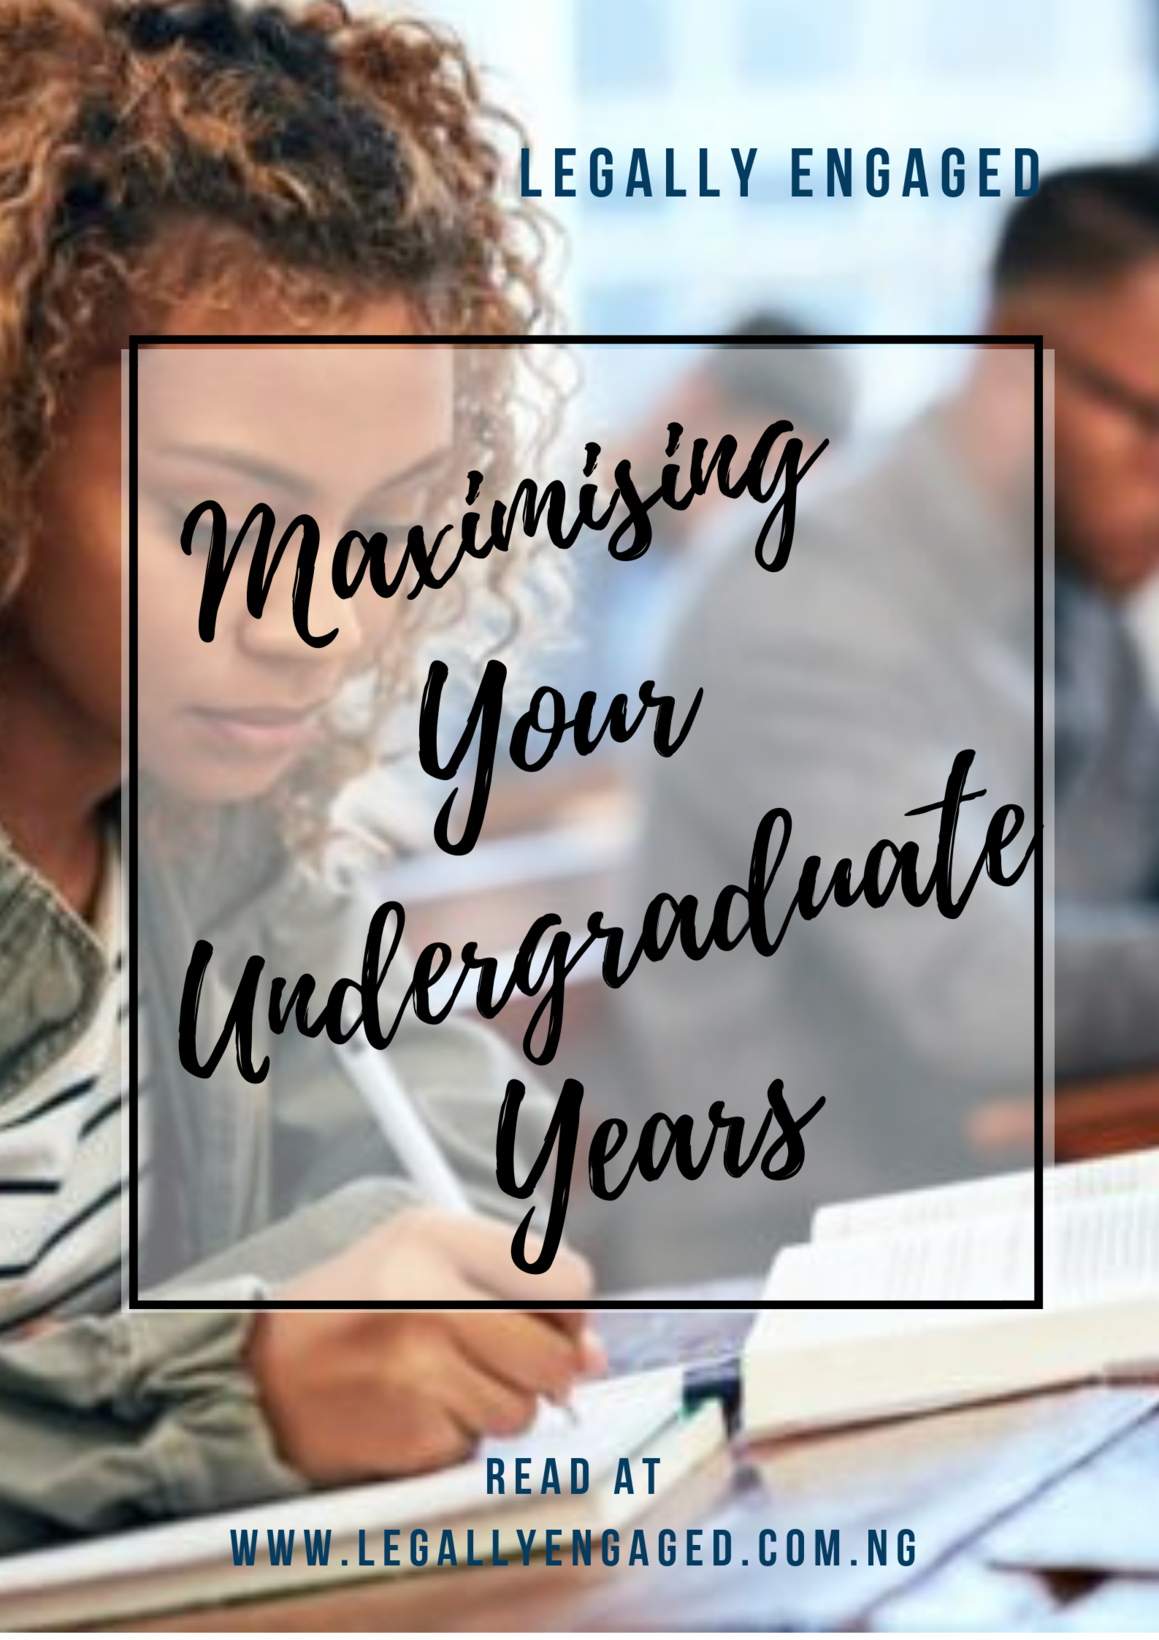 Maximizing Your University Years: the undergraduate's guide to legal excellence